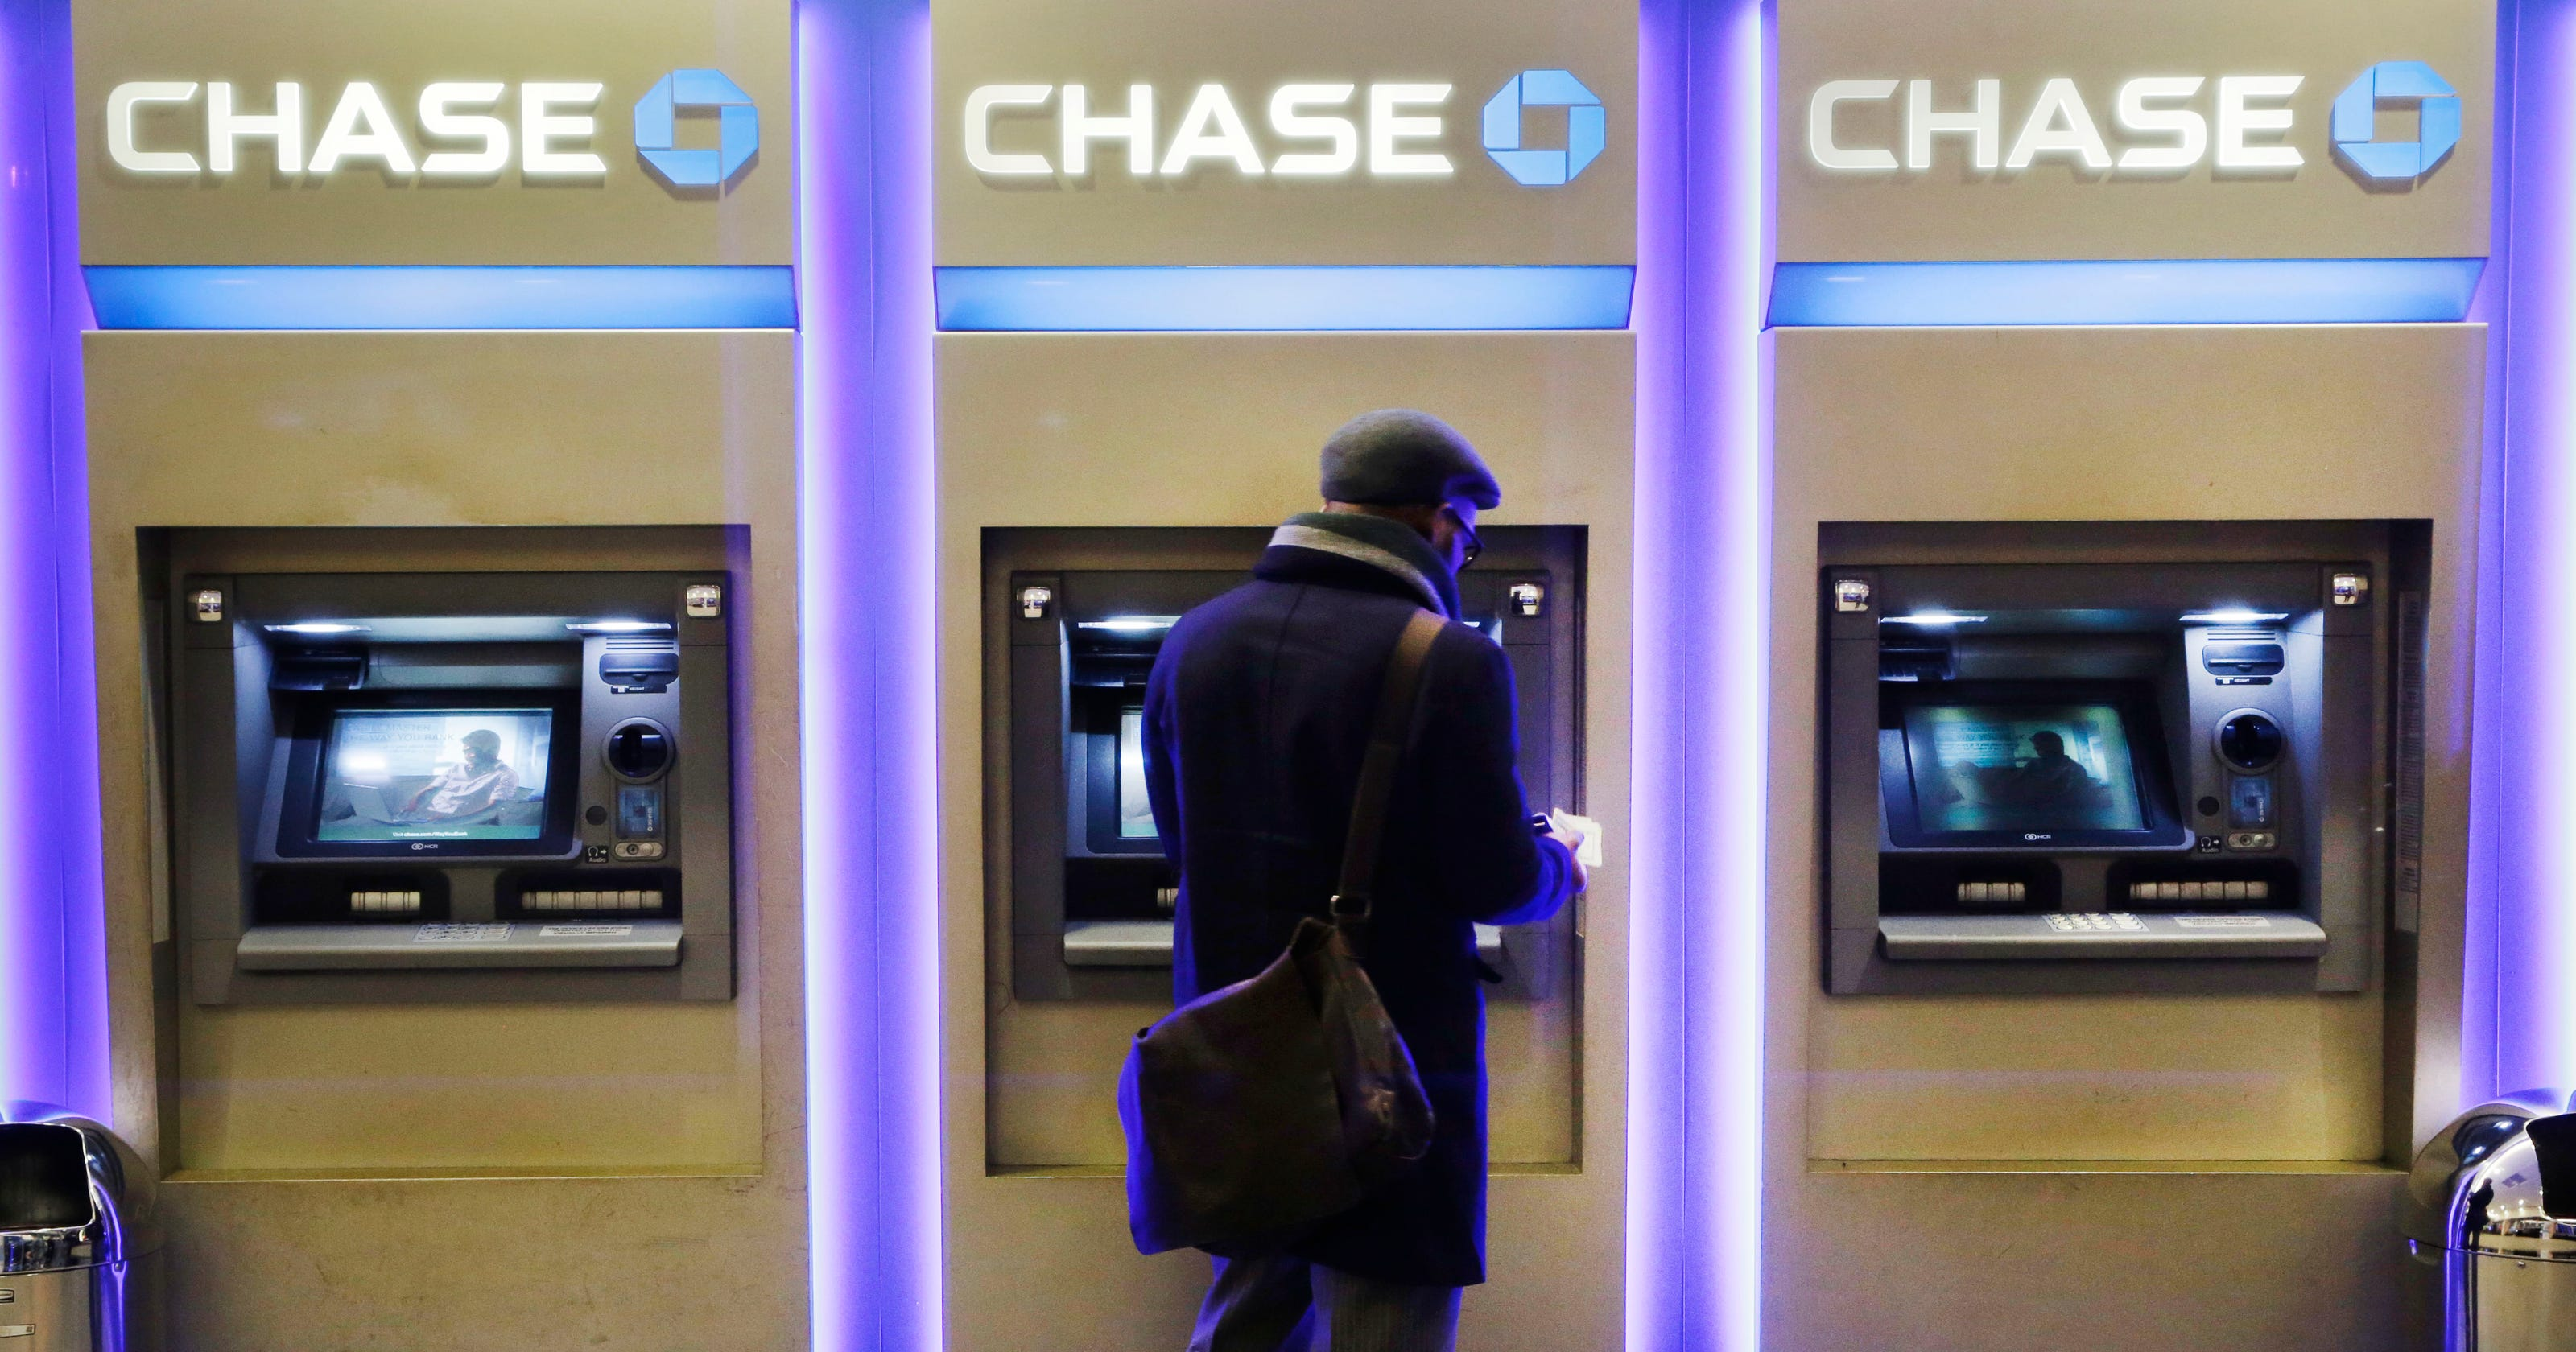 From first to worst: Ranking 9 of America's big banks by customer